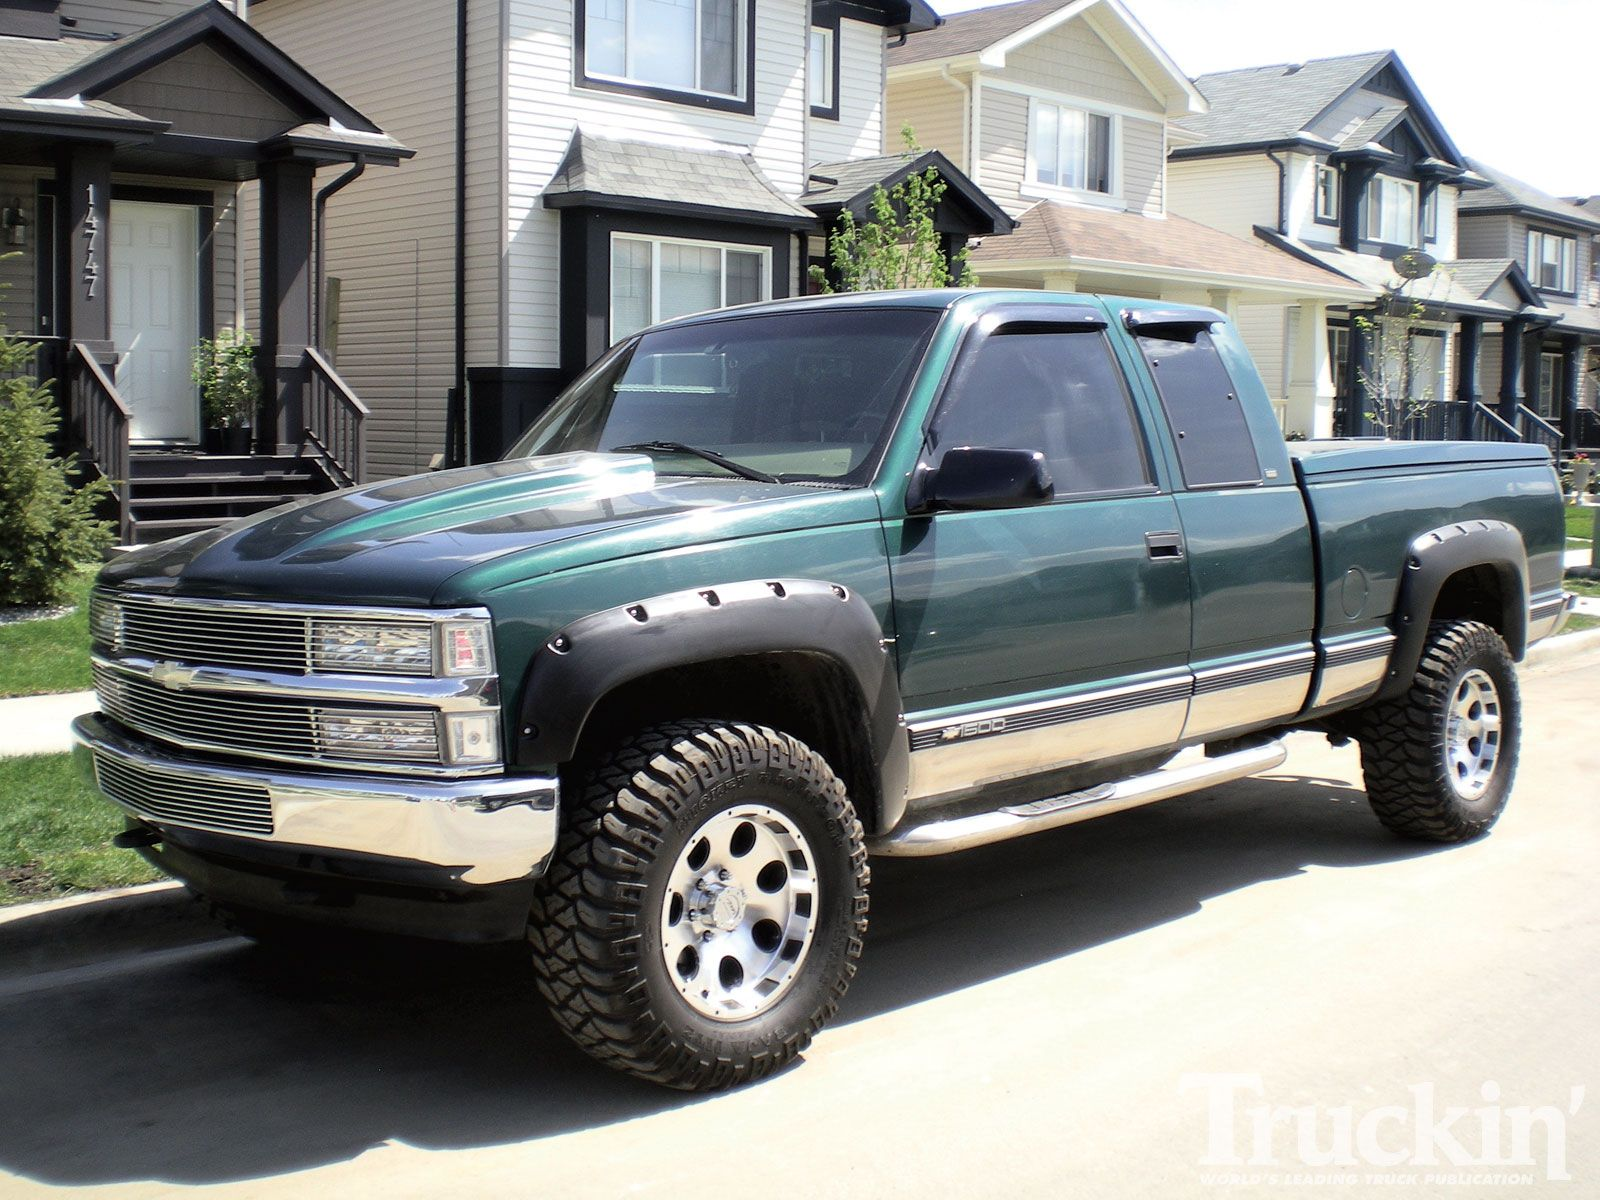 small resolution of 98 chevy silverado parts truckin magazine readers rides 1998 chevy silverado photo 1